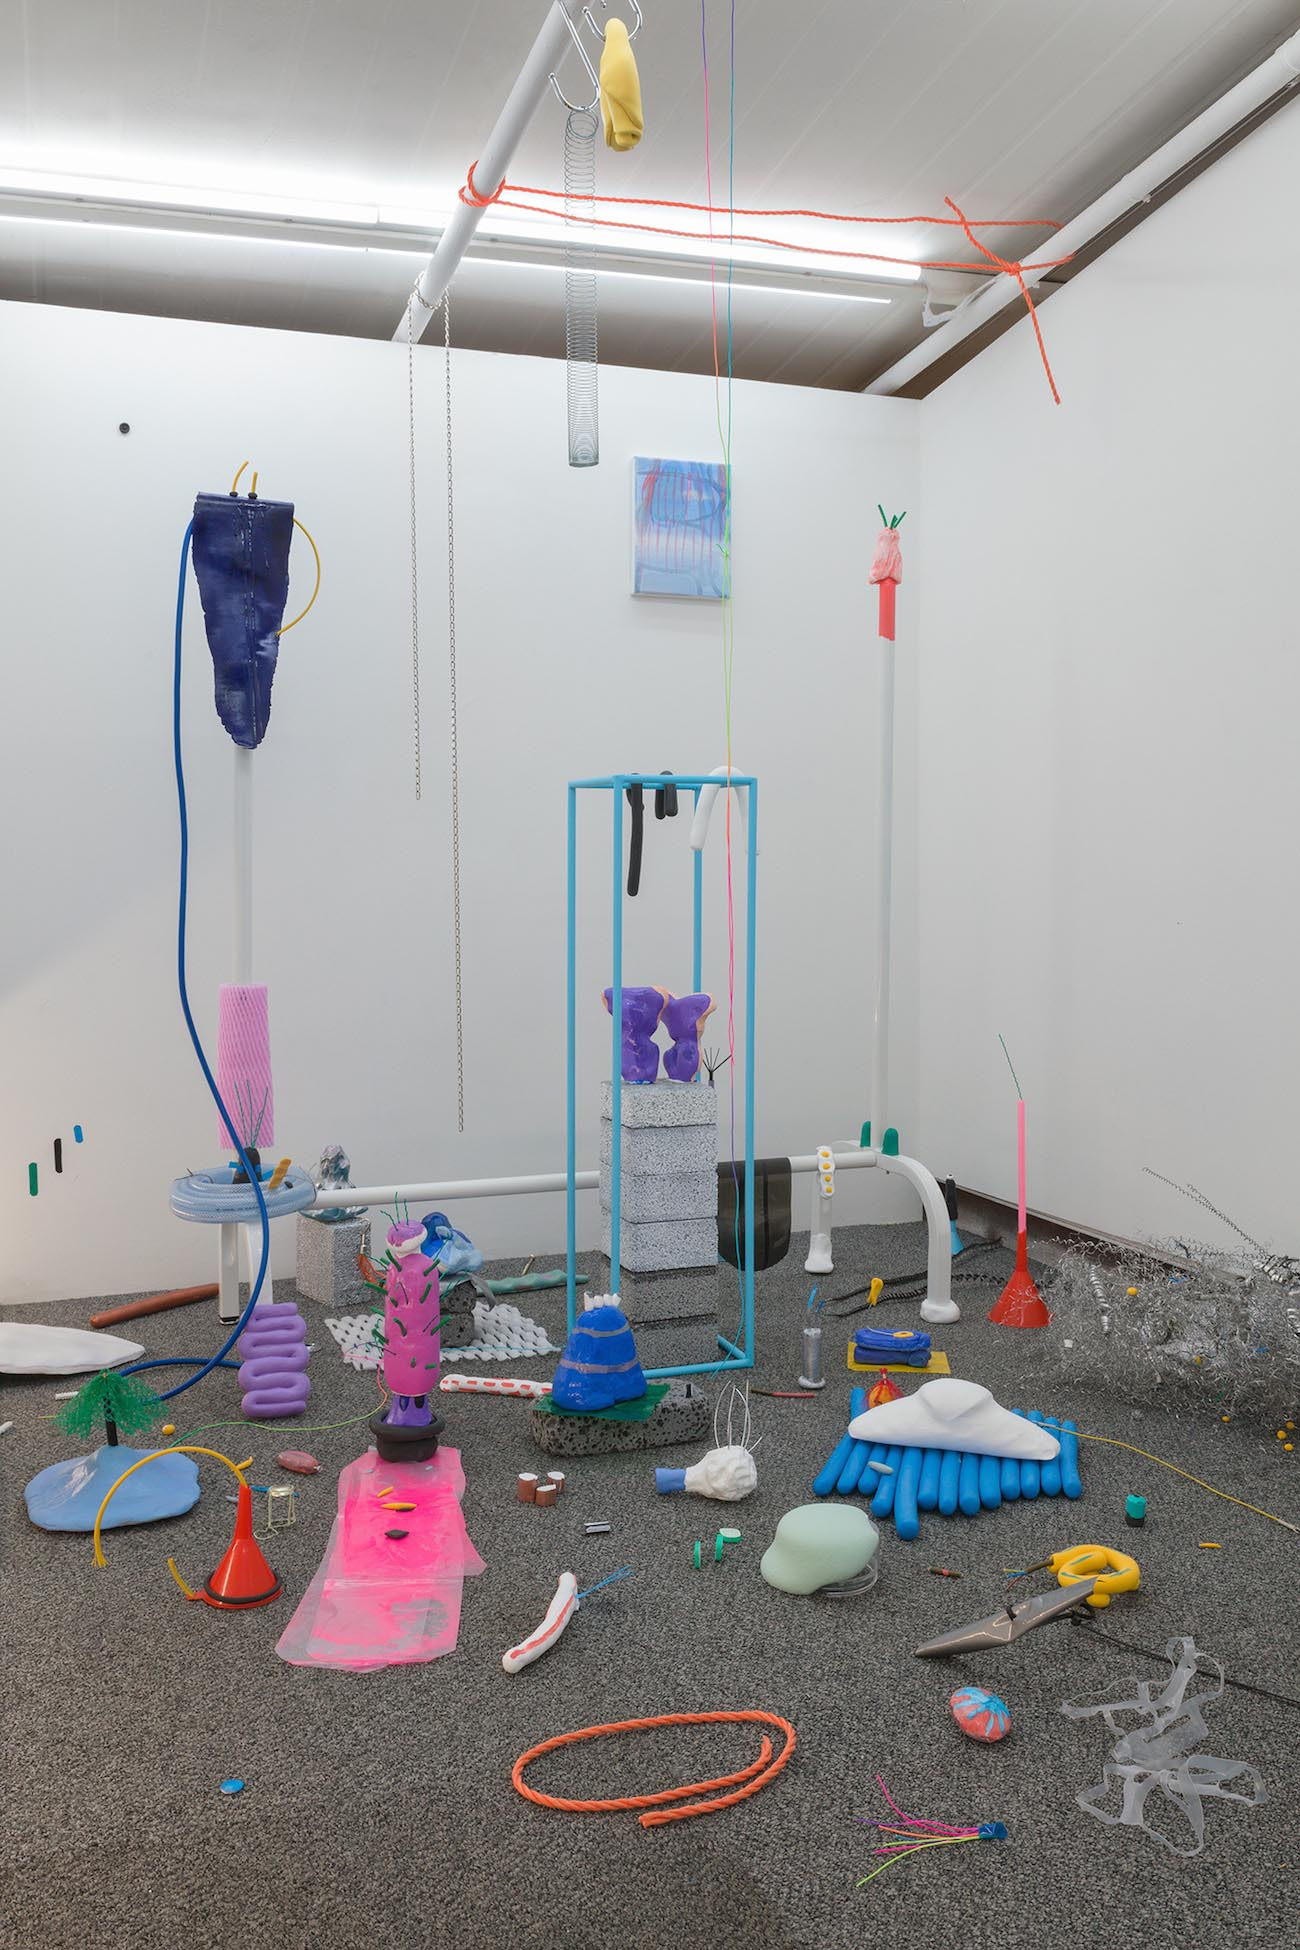 Jae Jo, Room33,2018,mixed media installation,dimensions variable